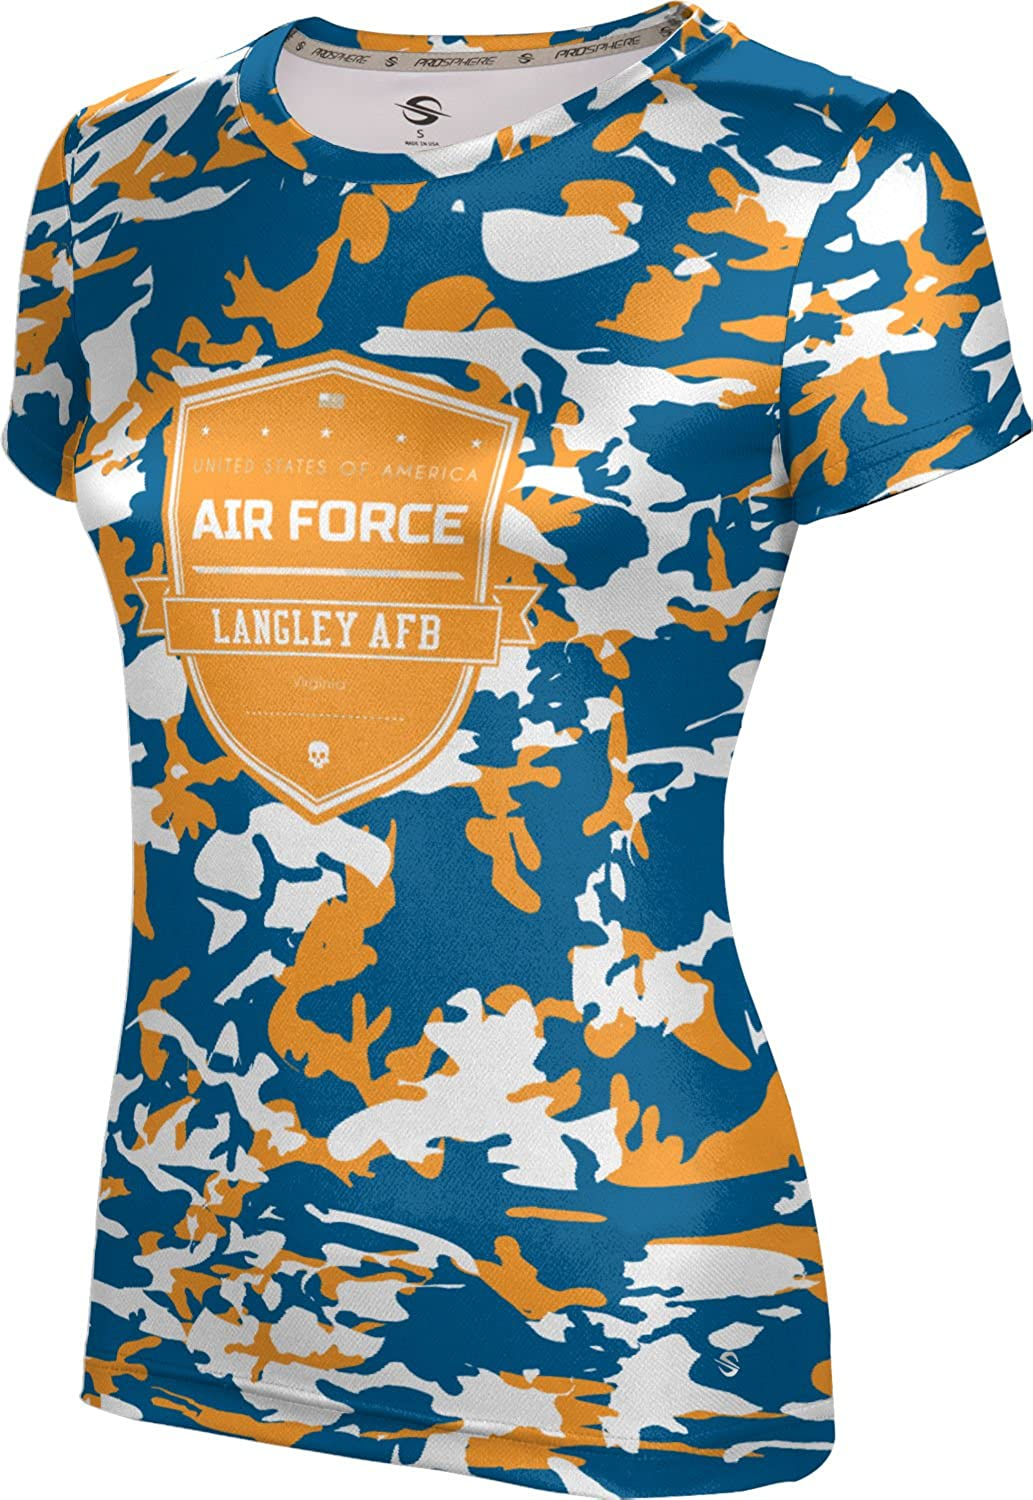 ProSphere Women's Langley AFB Military Camo Tech Tee